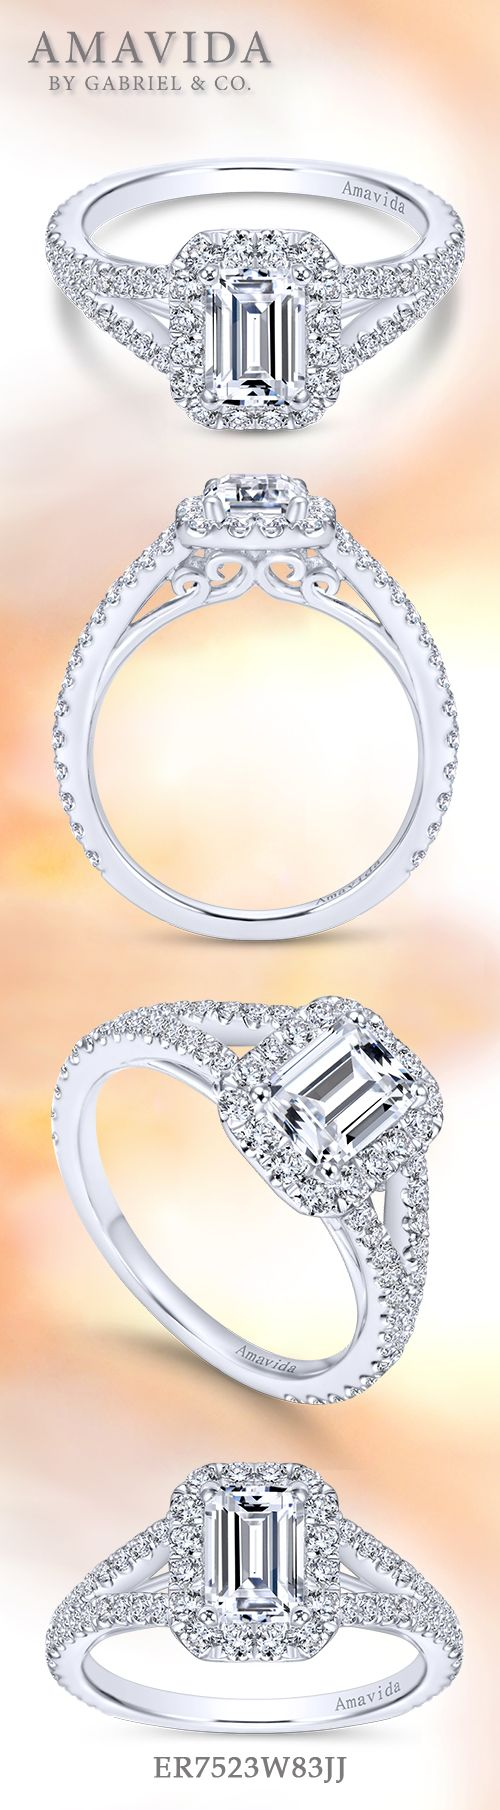 Amavida by Gabriel & Co. - Voted #1 Most Preferred Bridal Brand.   Chic and contemporary to describe this white gold emerald cut engagement ring.